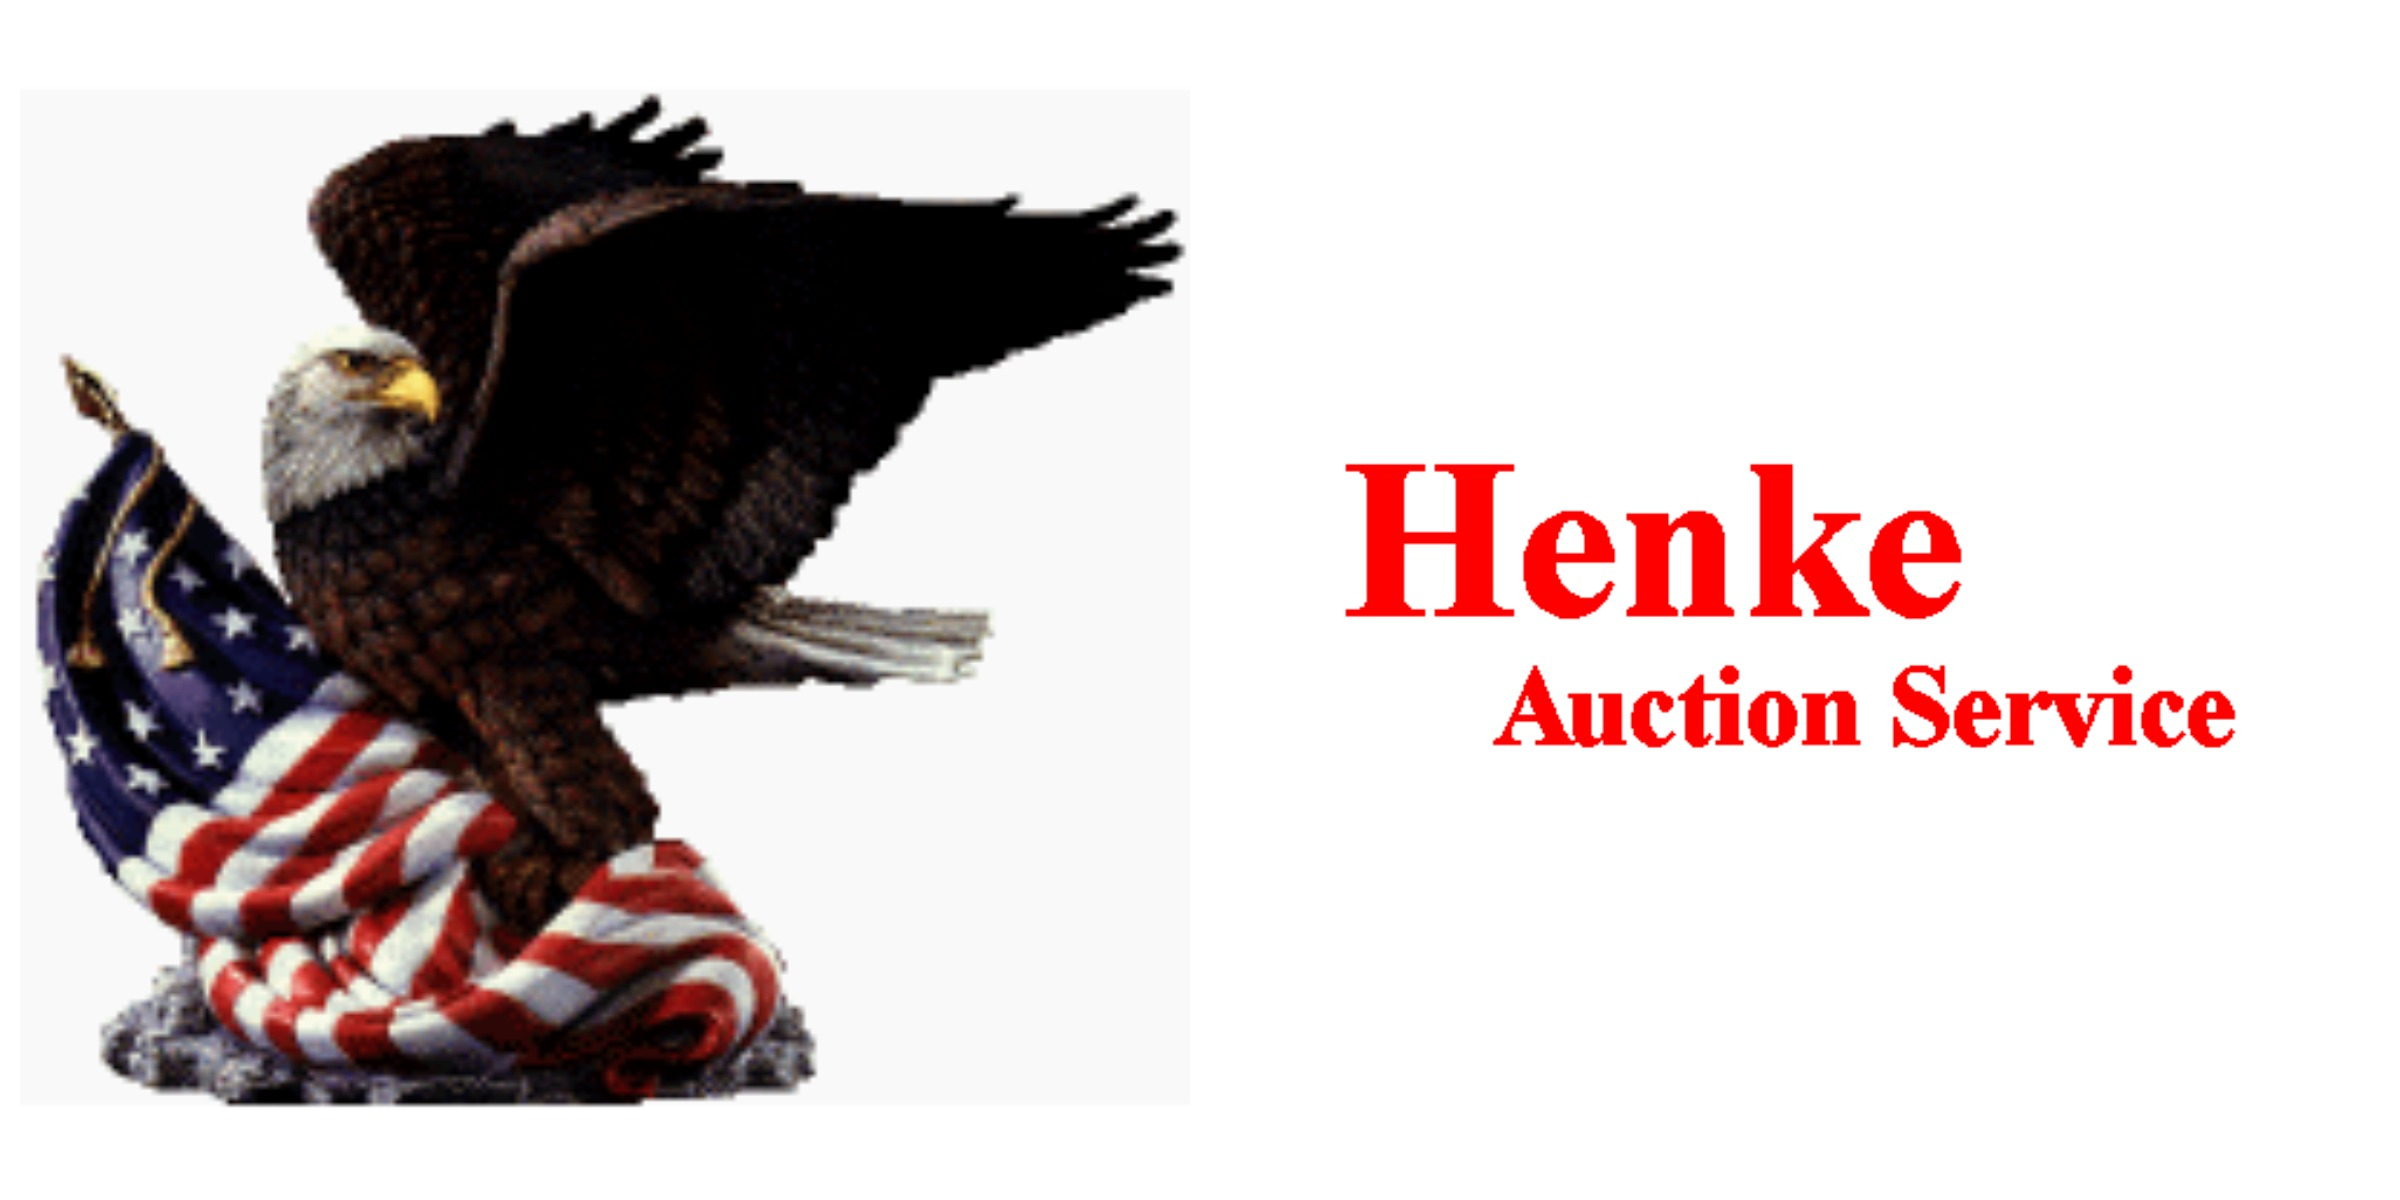 Henke Auction Service